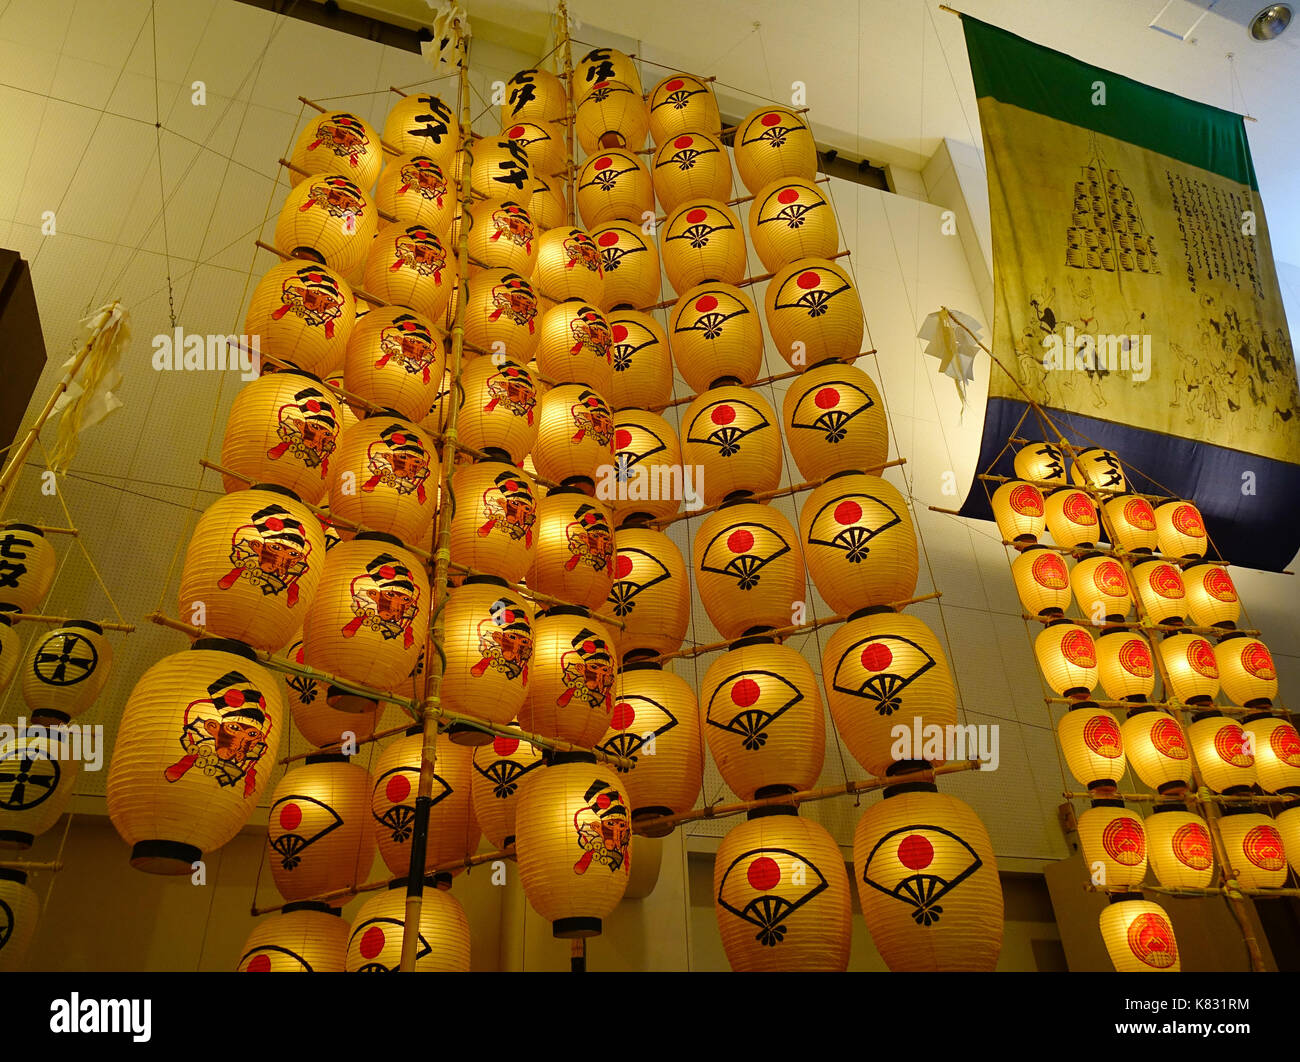 Akita, Japan - May 17, 2017. Kanto Lanterns at traditional art museum in Akita, Japan. Akita Kanto Festival Important Stock Photo